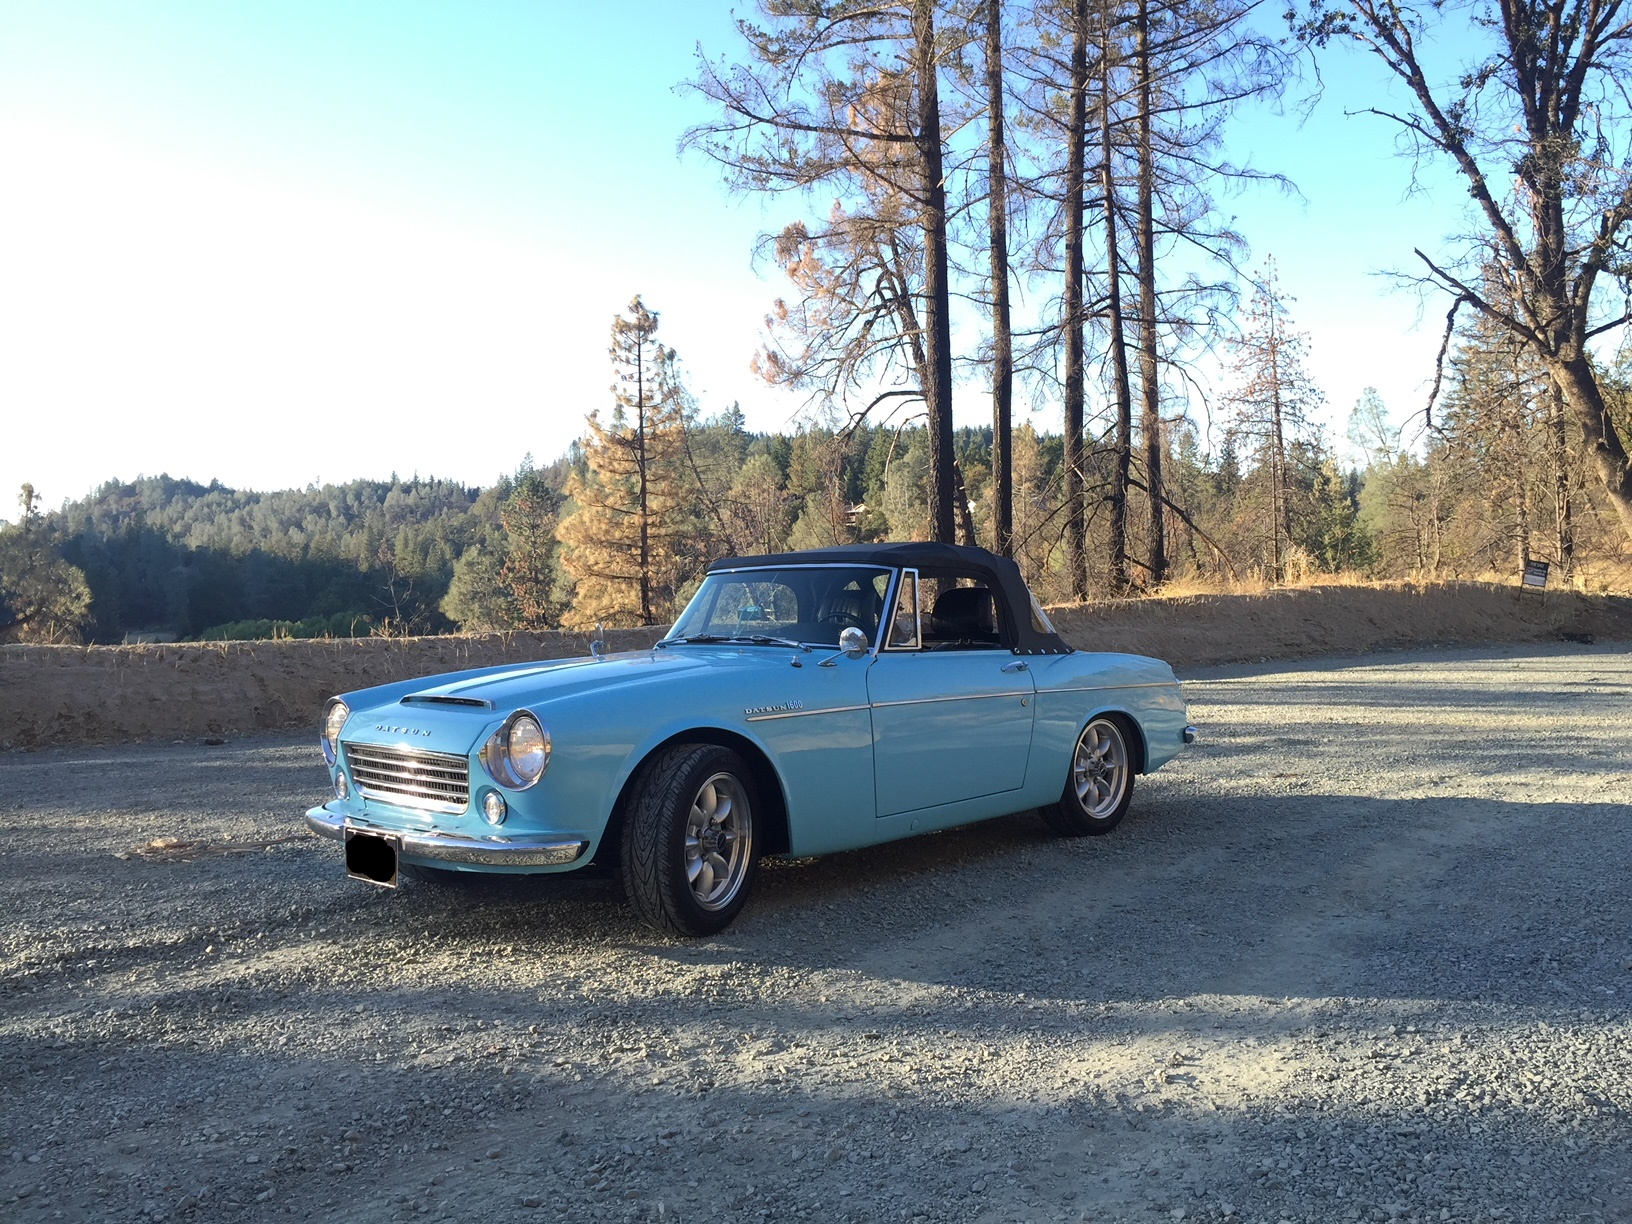 Datsun 1600 Roadster >> Datsun R16 Roadster Distributor Bluetooth Programmable R16 311 411 1600 2000 411sss U20 H20 L4 Engine Built To Order 50 Refundable Core Charge